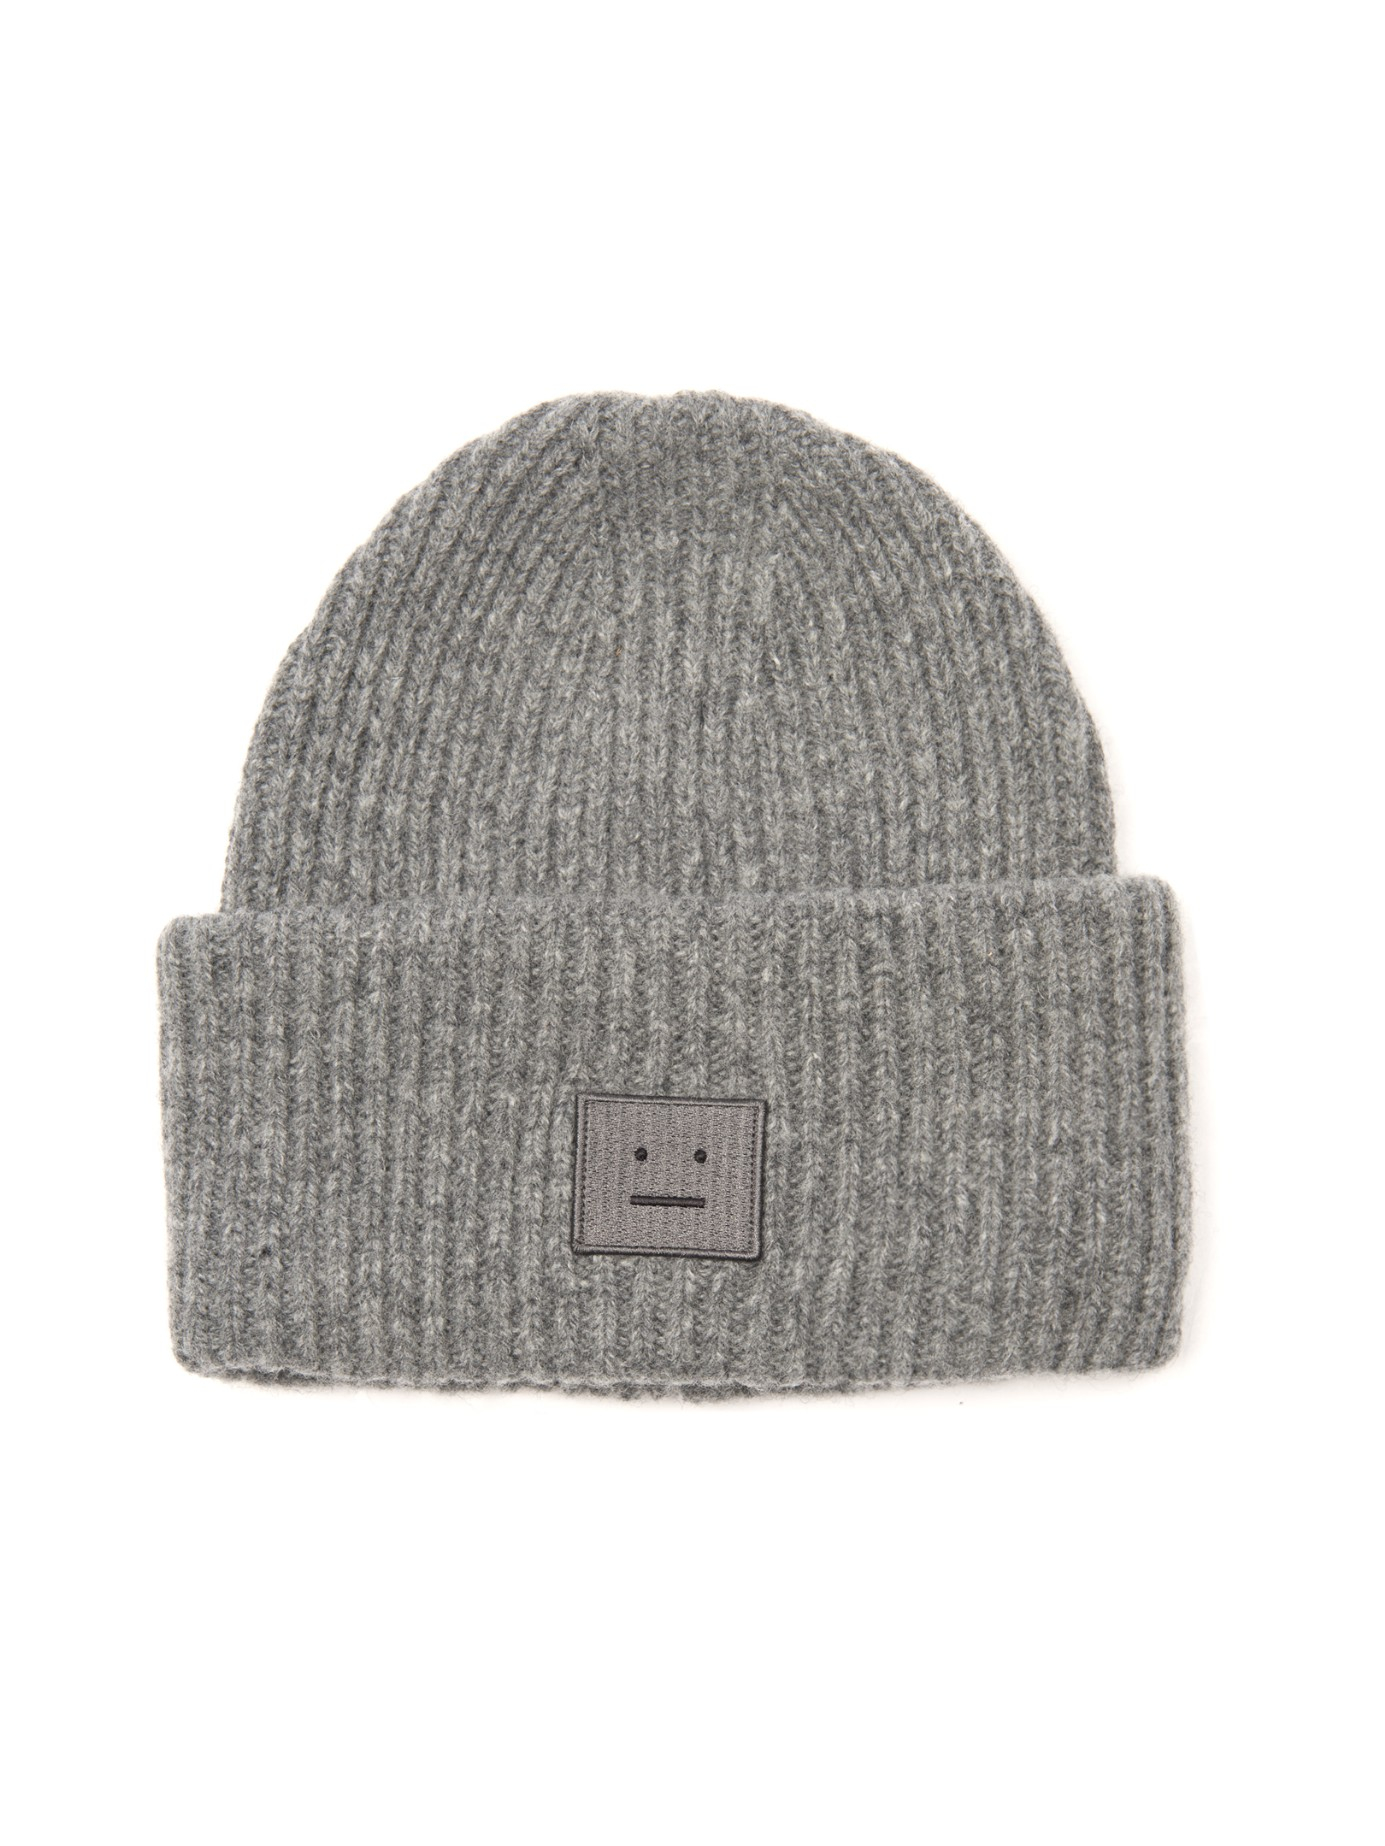 Lyst - Acne Studios Pansy Ribbed-Knit Wool Beanie in Gray b9123958f68